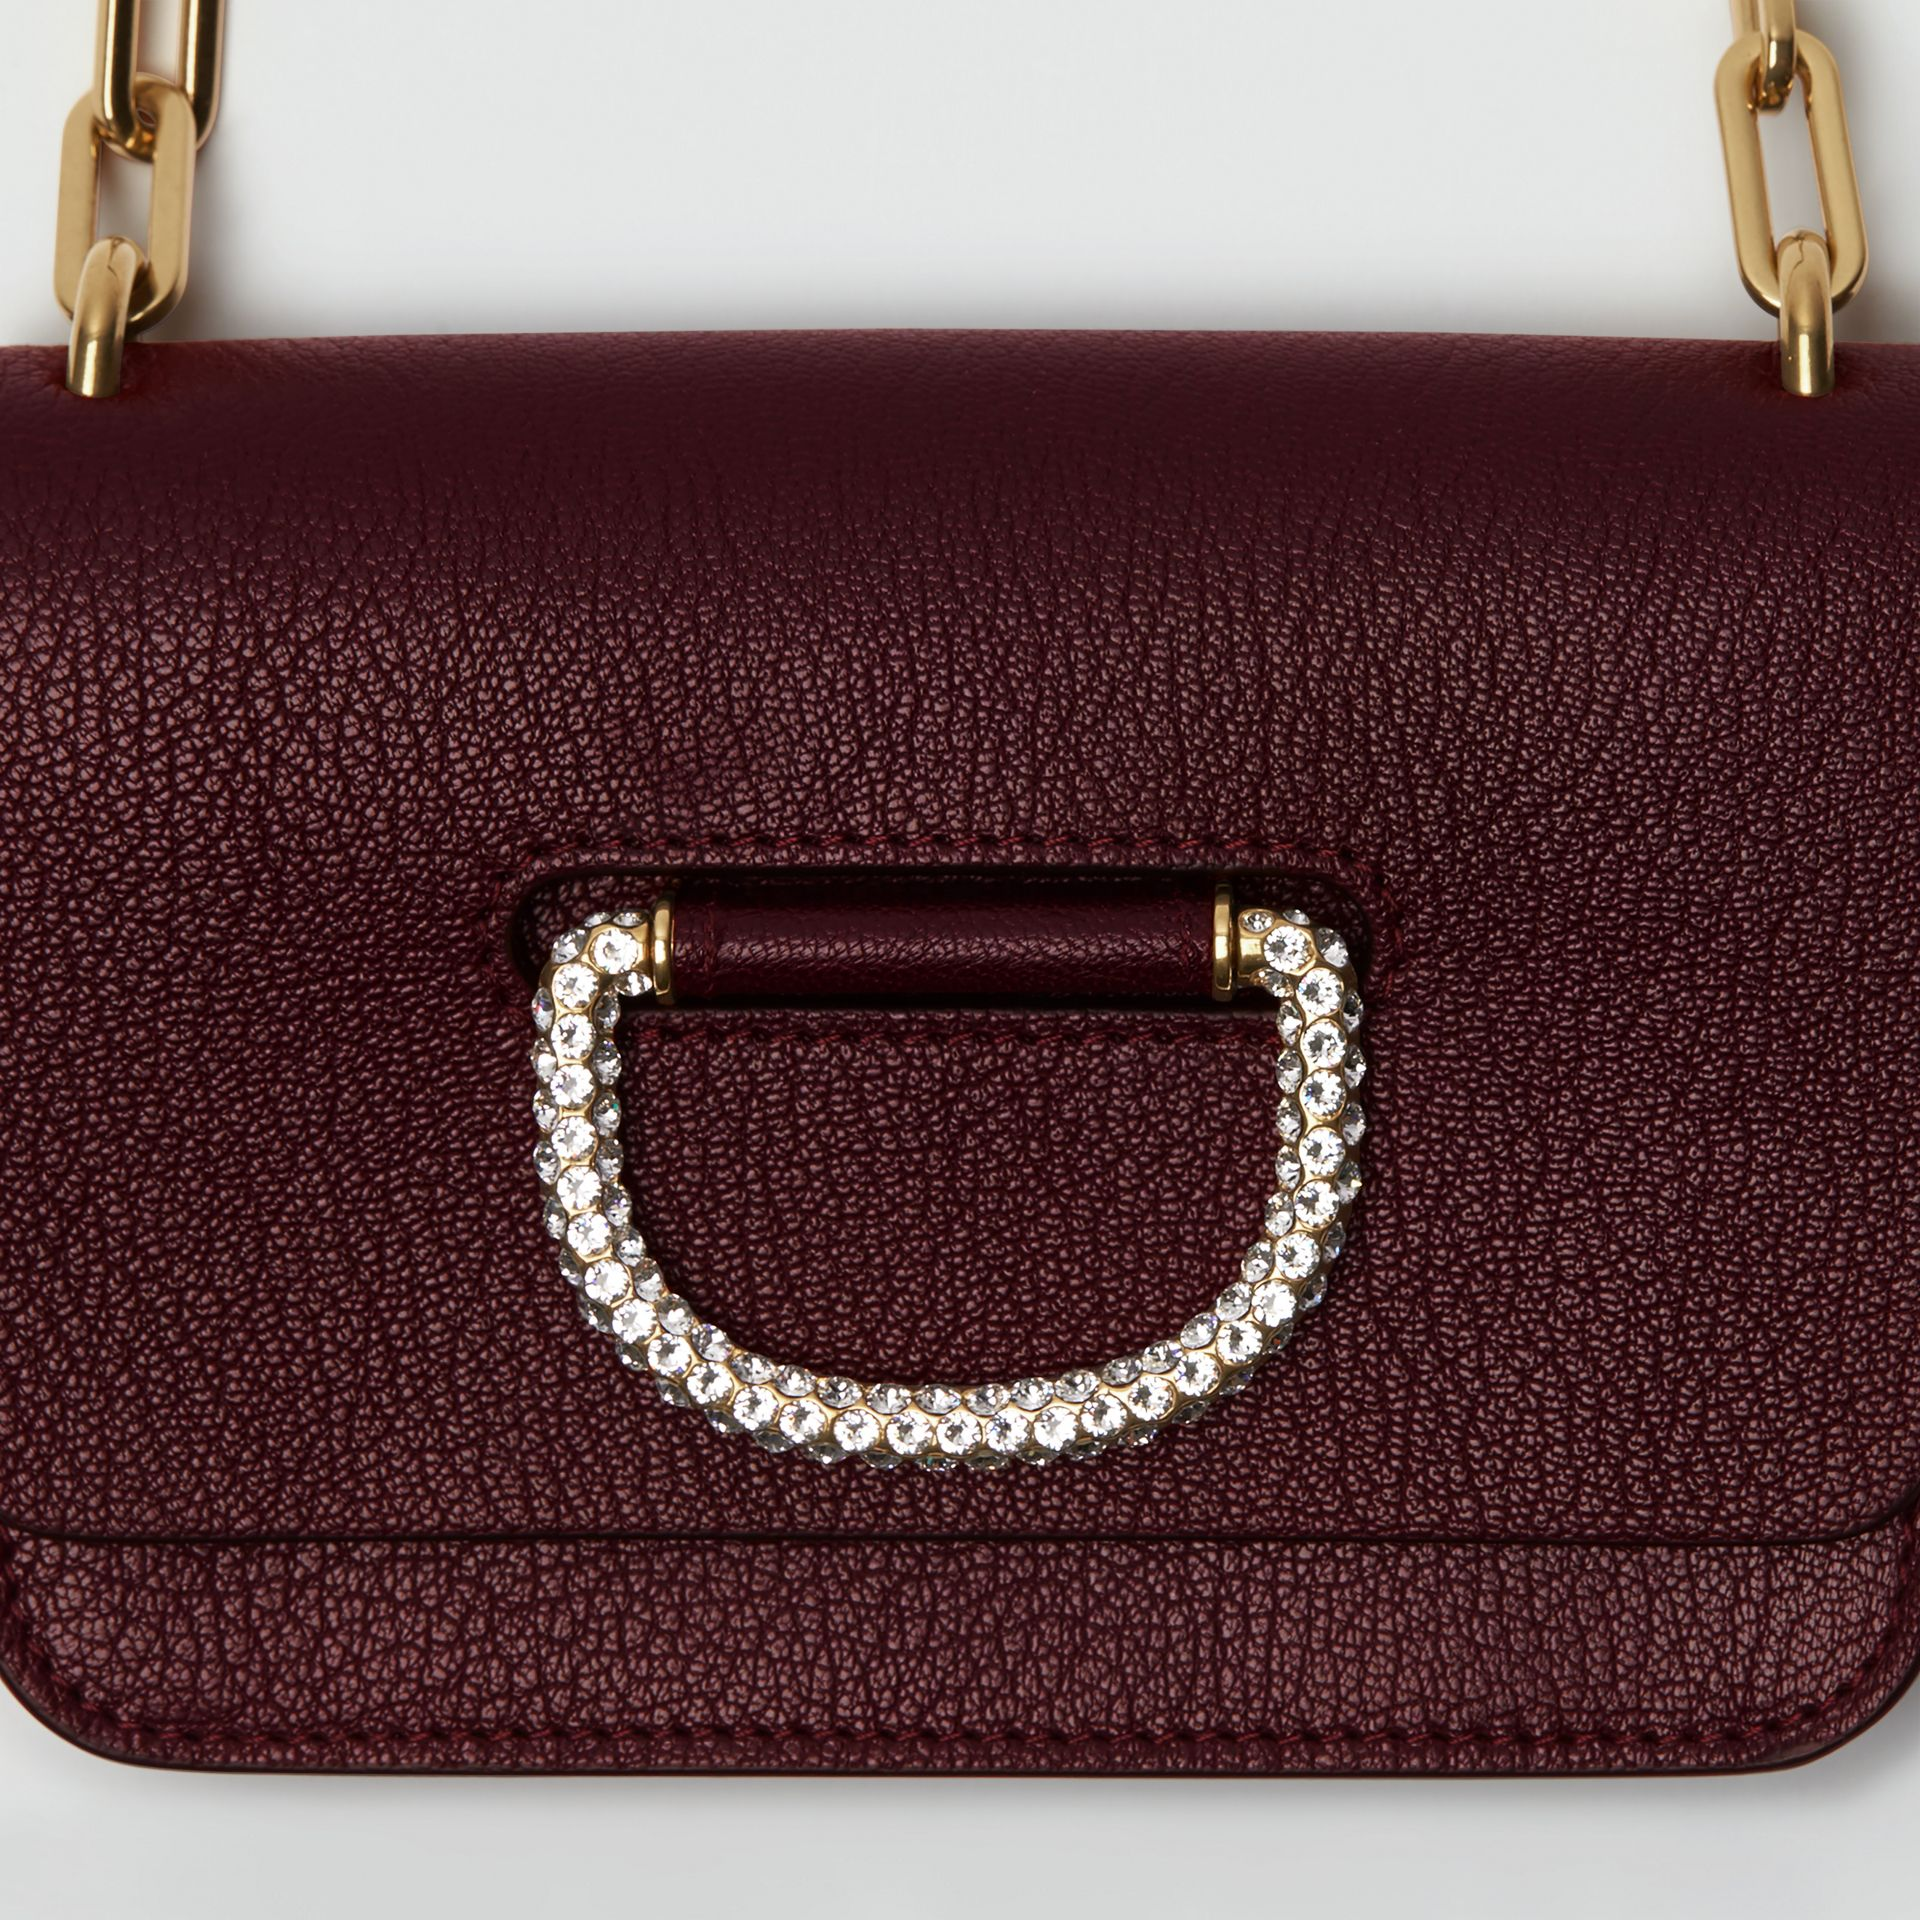 The Mini Leather Crystal D-ring Bag in Deep Claret - Women | Burberry Australia - gallery image 1